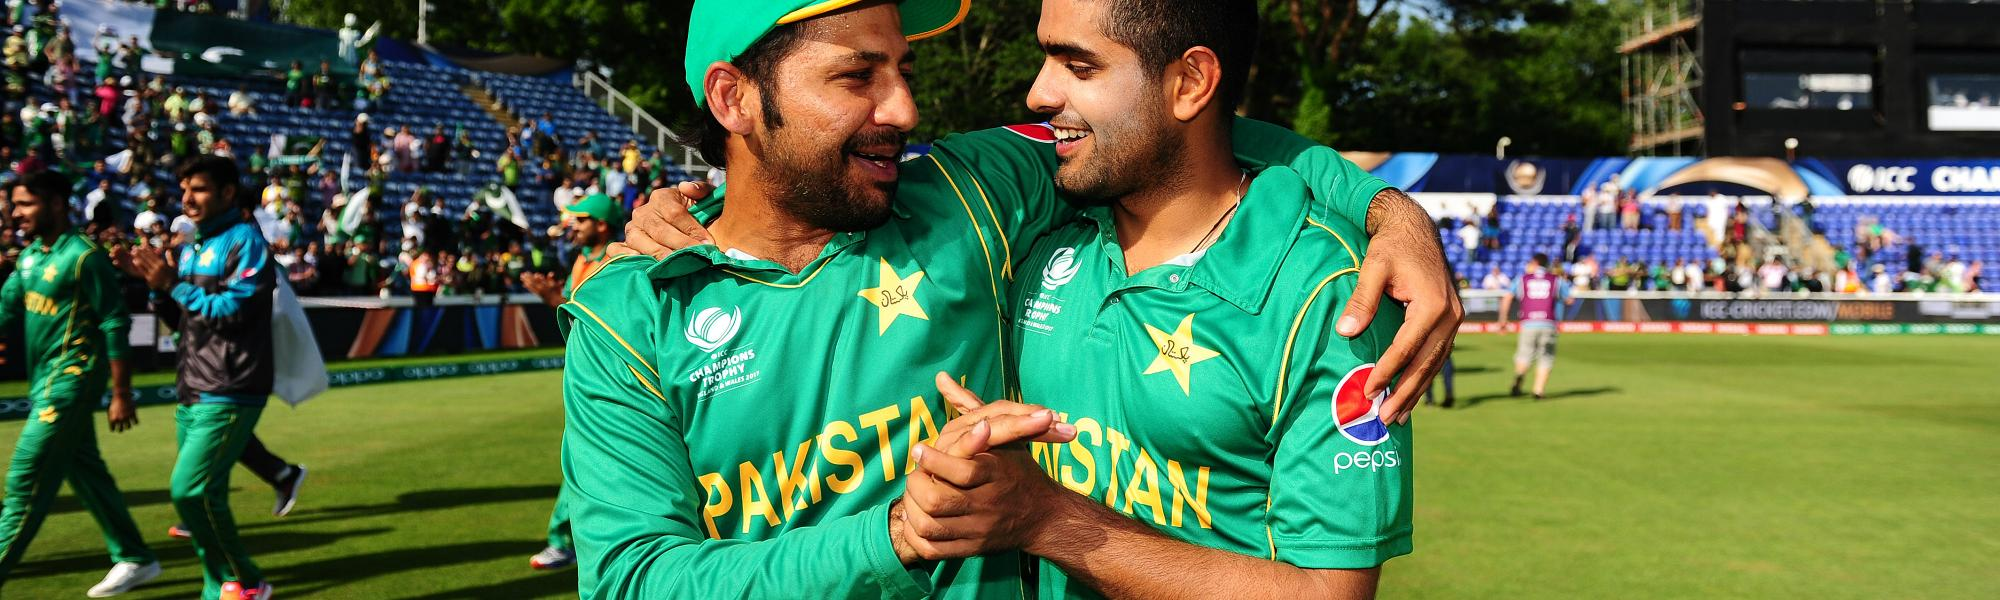 Pakistan have been led admirably by Sarfraz Ahmed to defy expectations and reach the Champions Trophy final